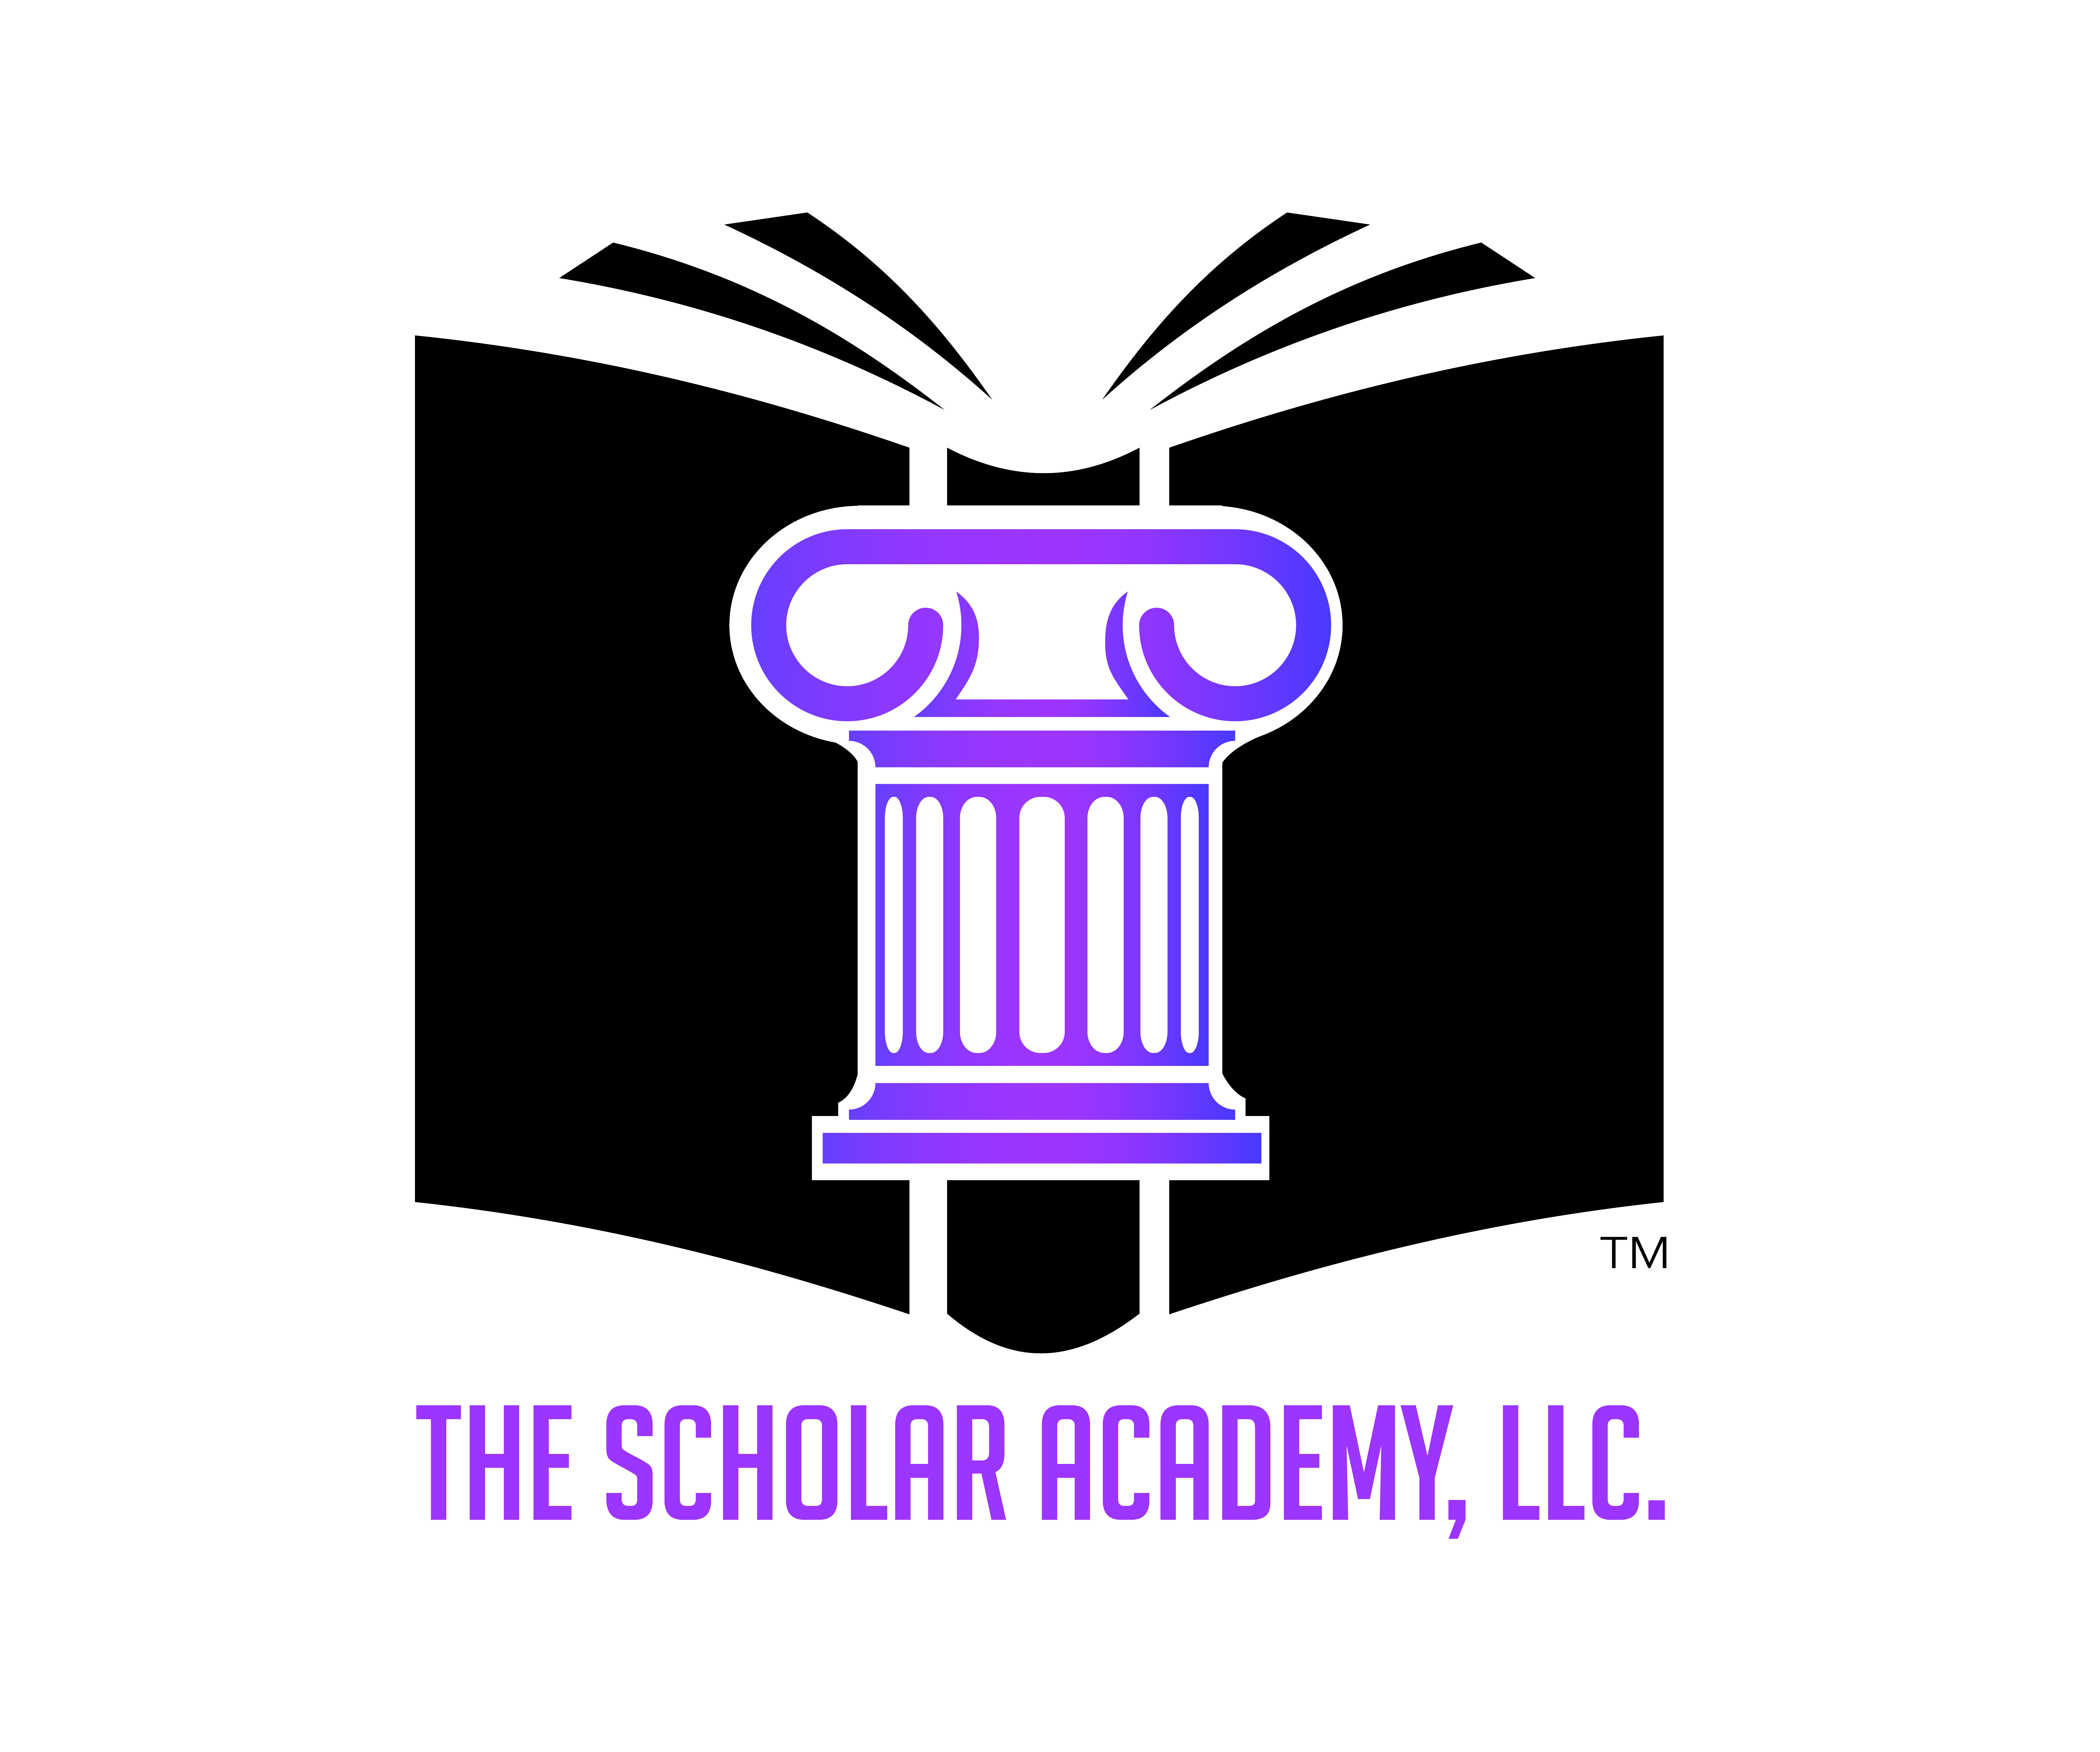 The Scholar Academy, LLC.